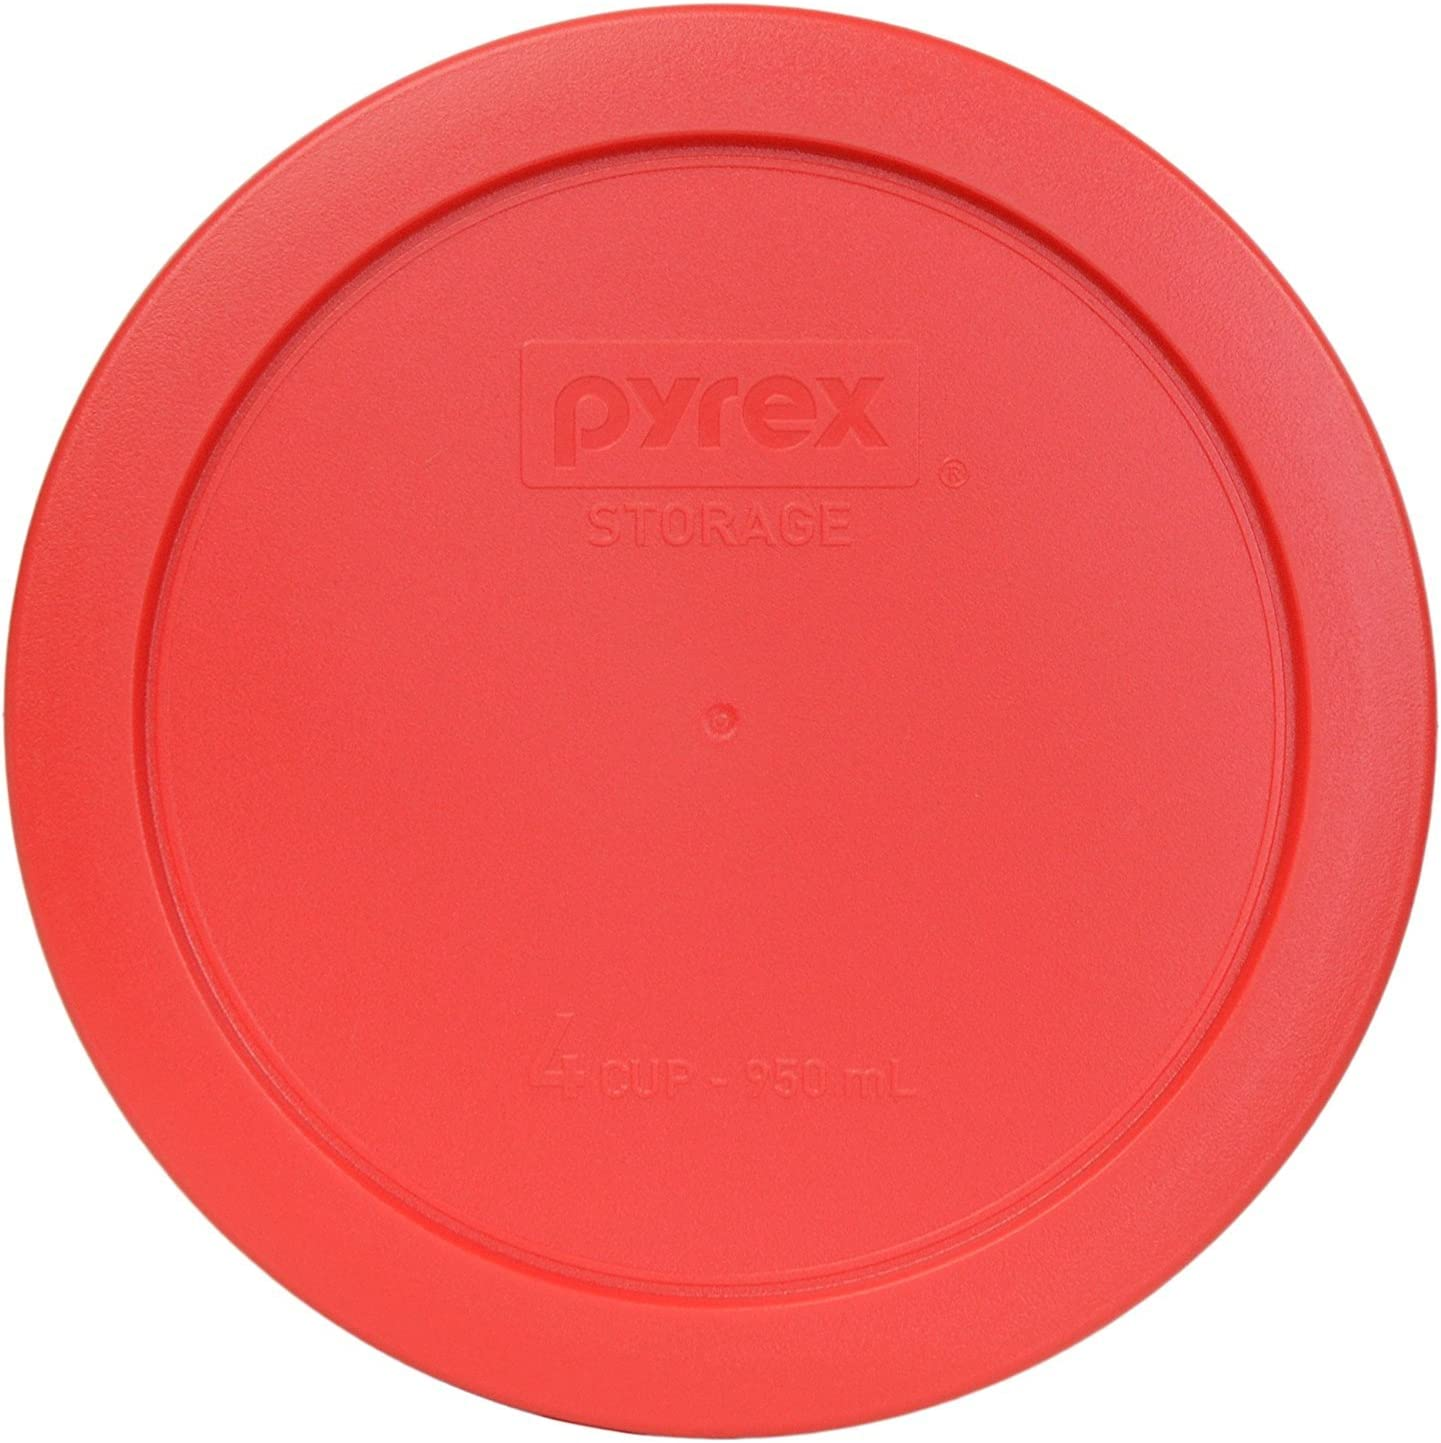 Pyrex 7201-PC Round 4 Cup Storage Lid for Glass Bowls (1, Red)